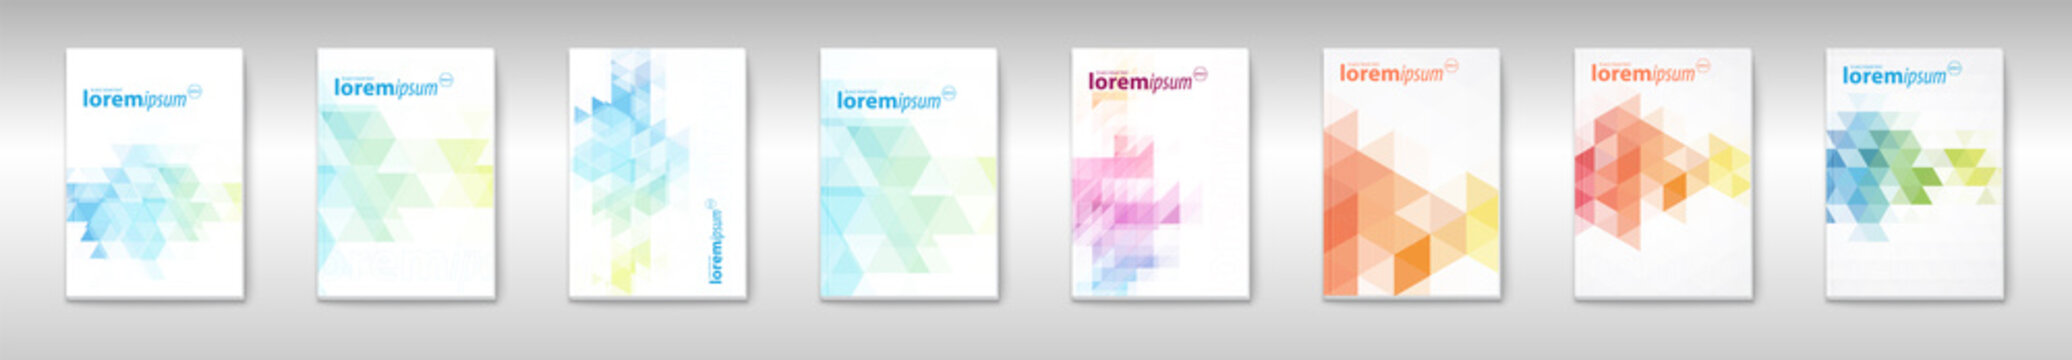 Business Brochure. Flyer Design. Leaflets a4 Template. Abstract Brochure Templates.